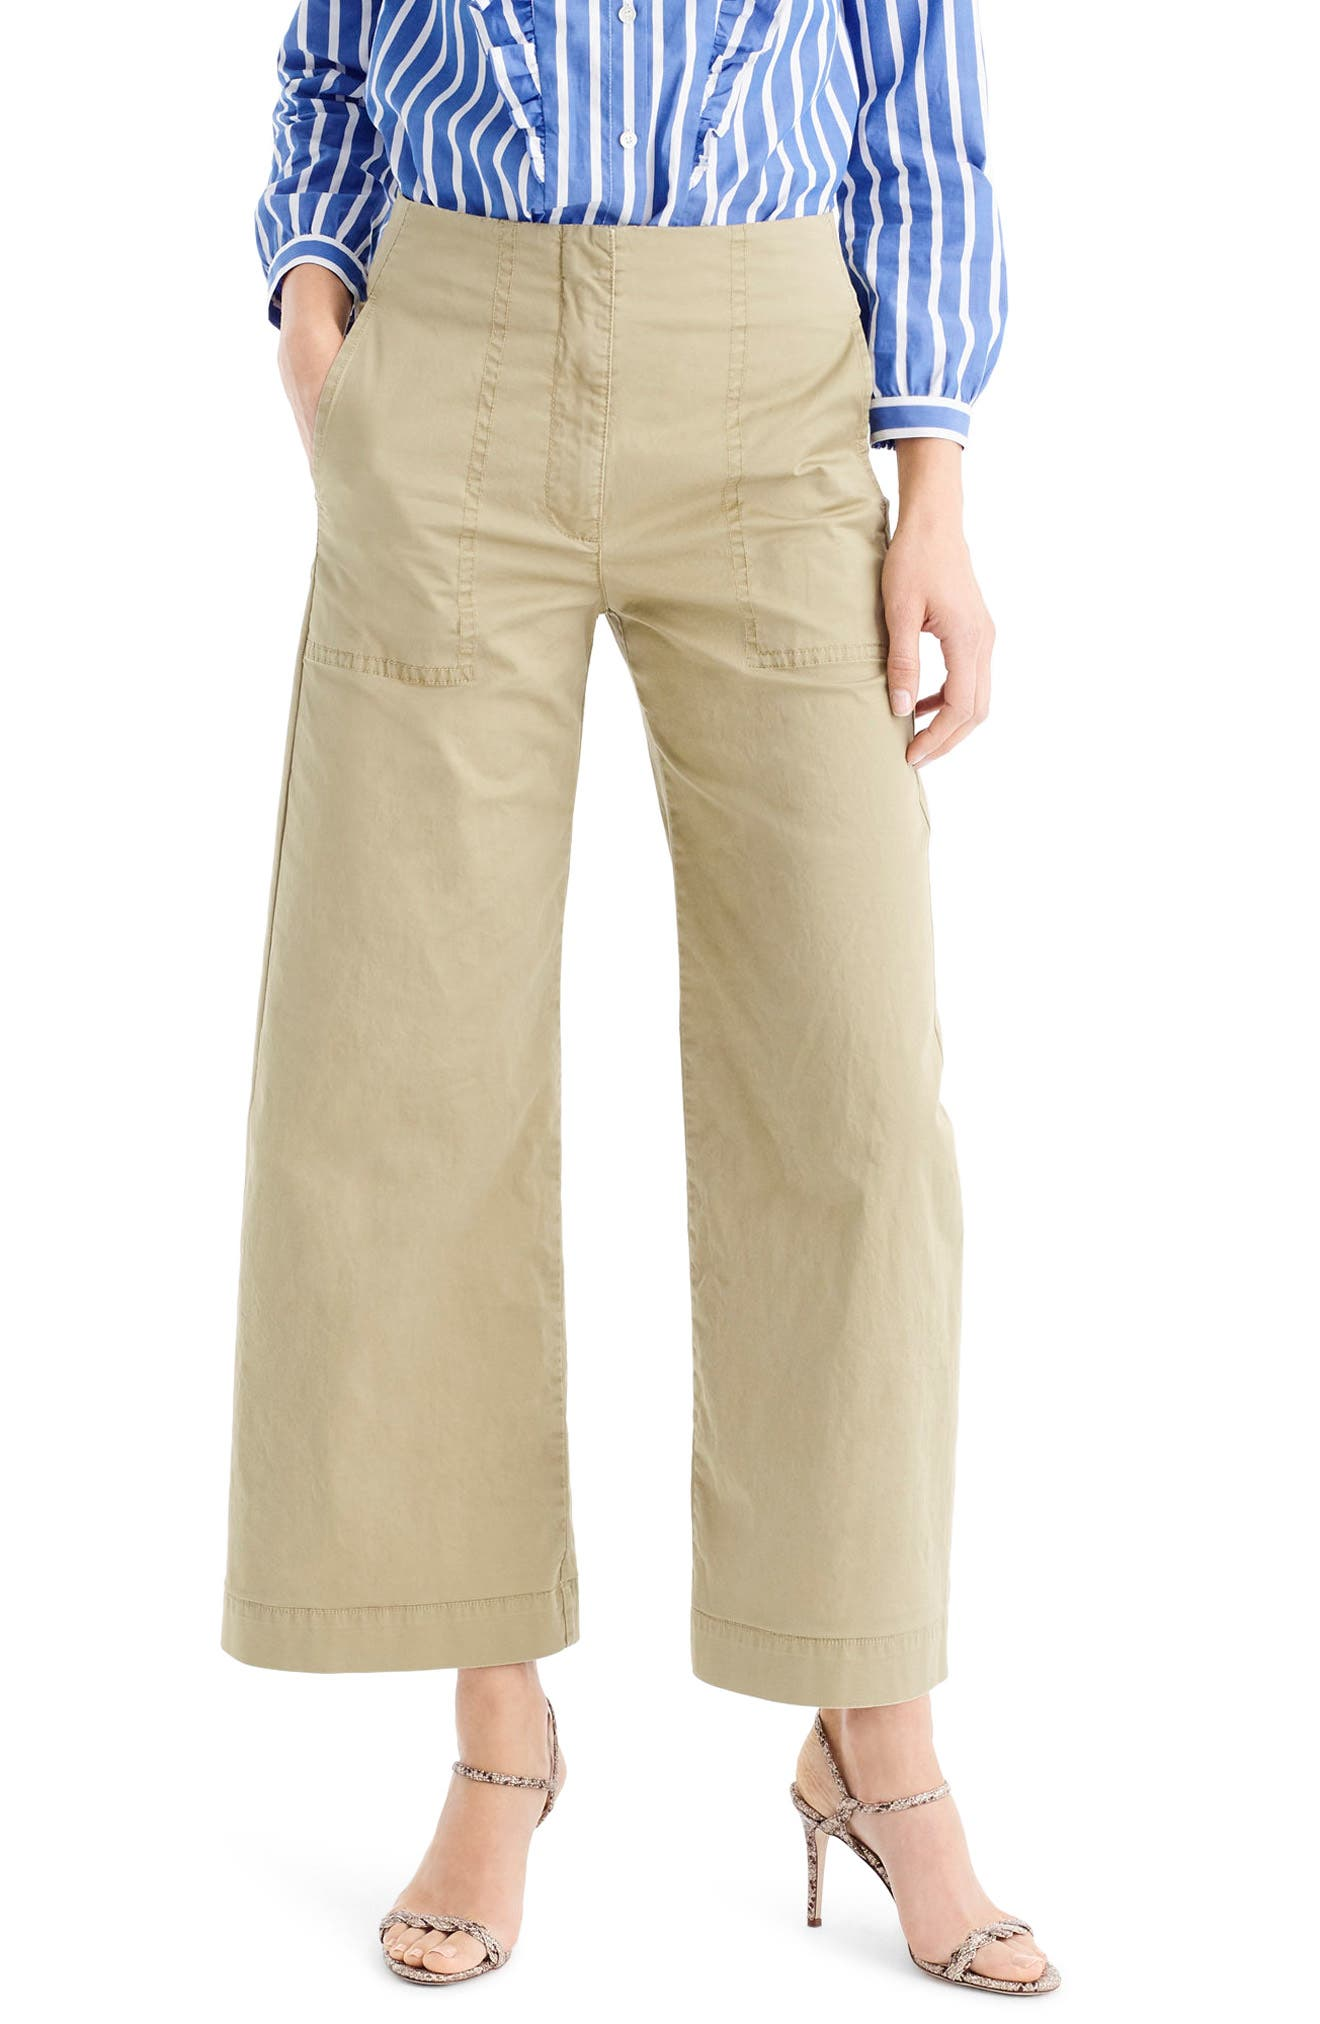 J.Crew Crop Stretch Chino Pants